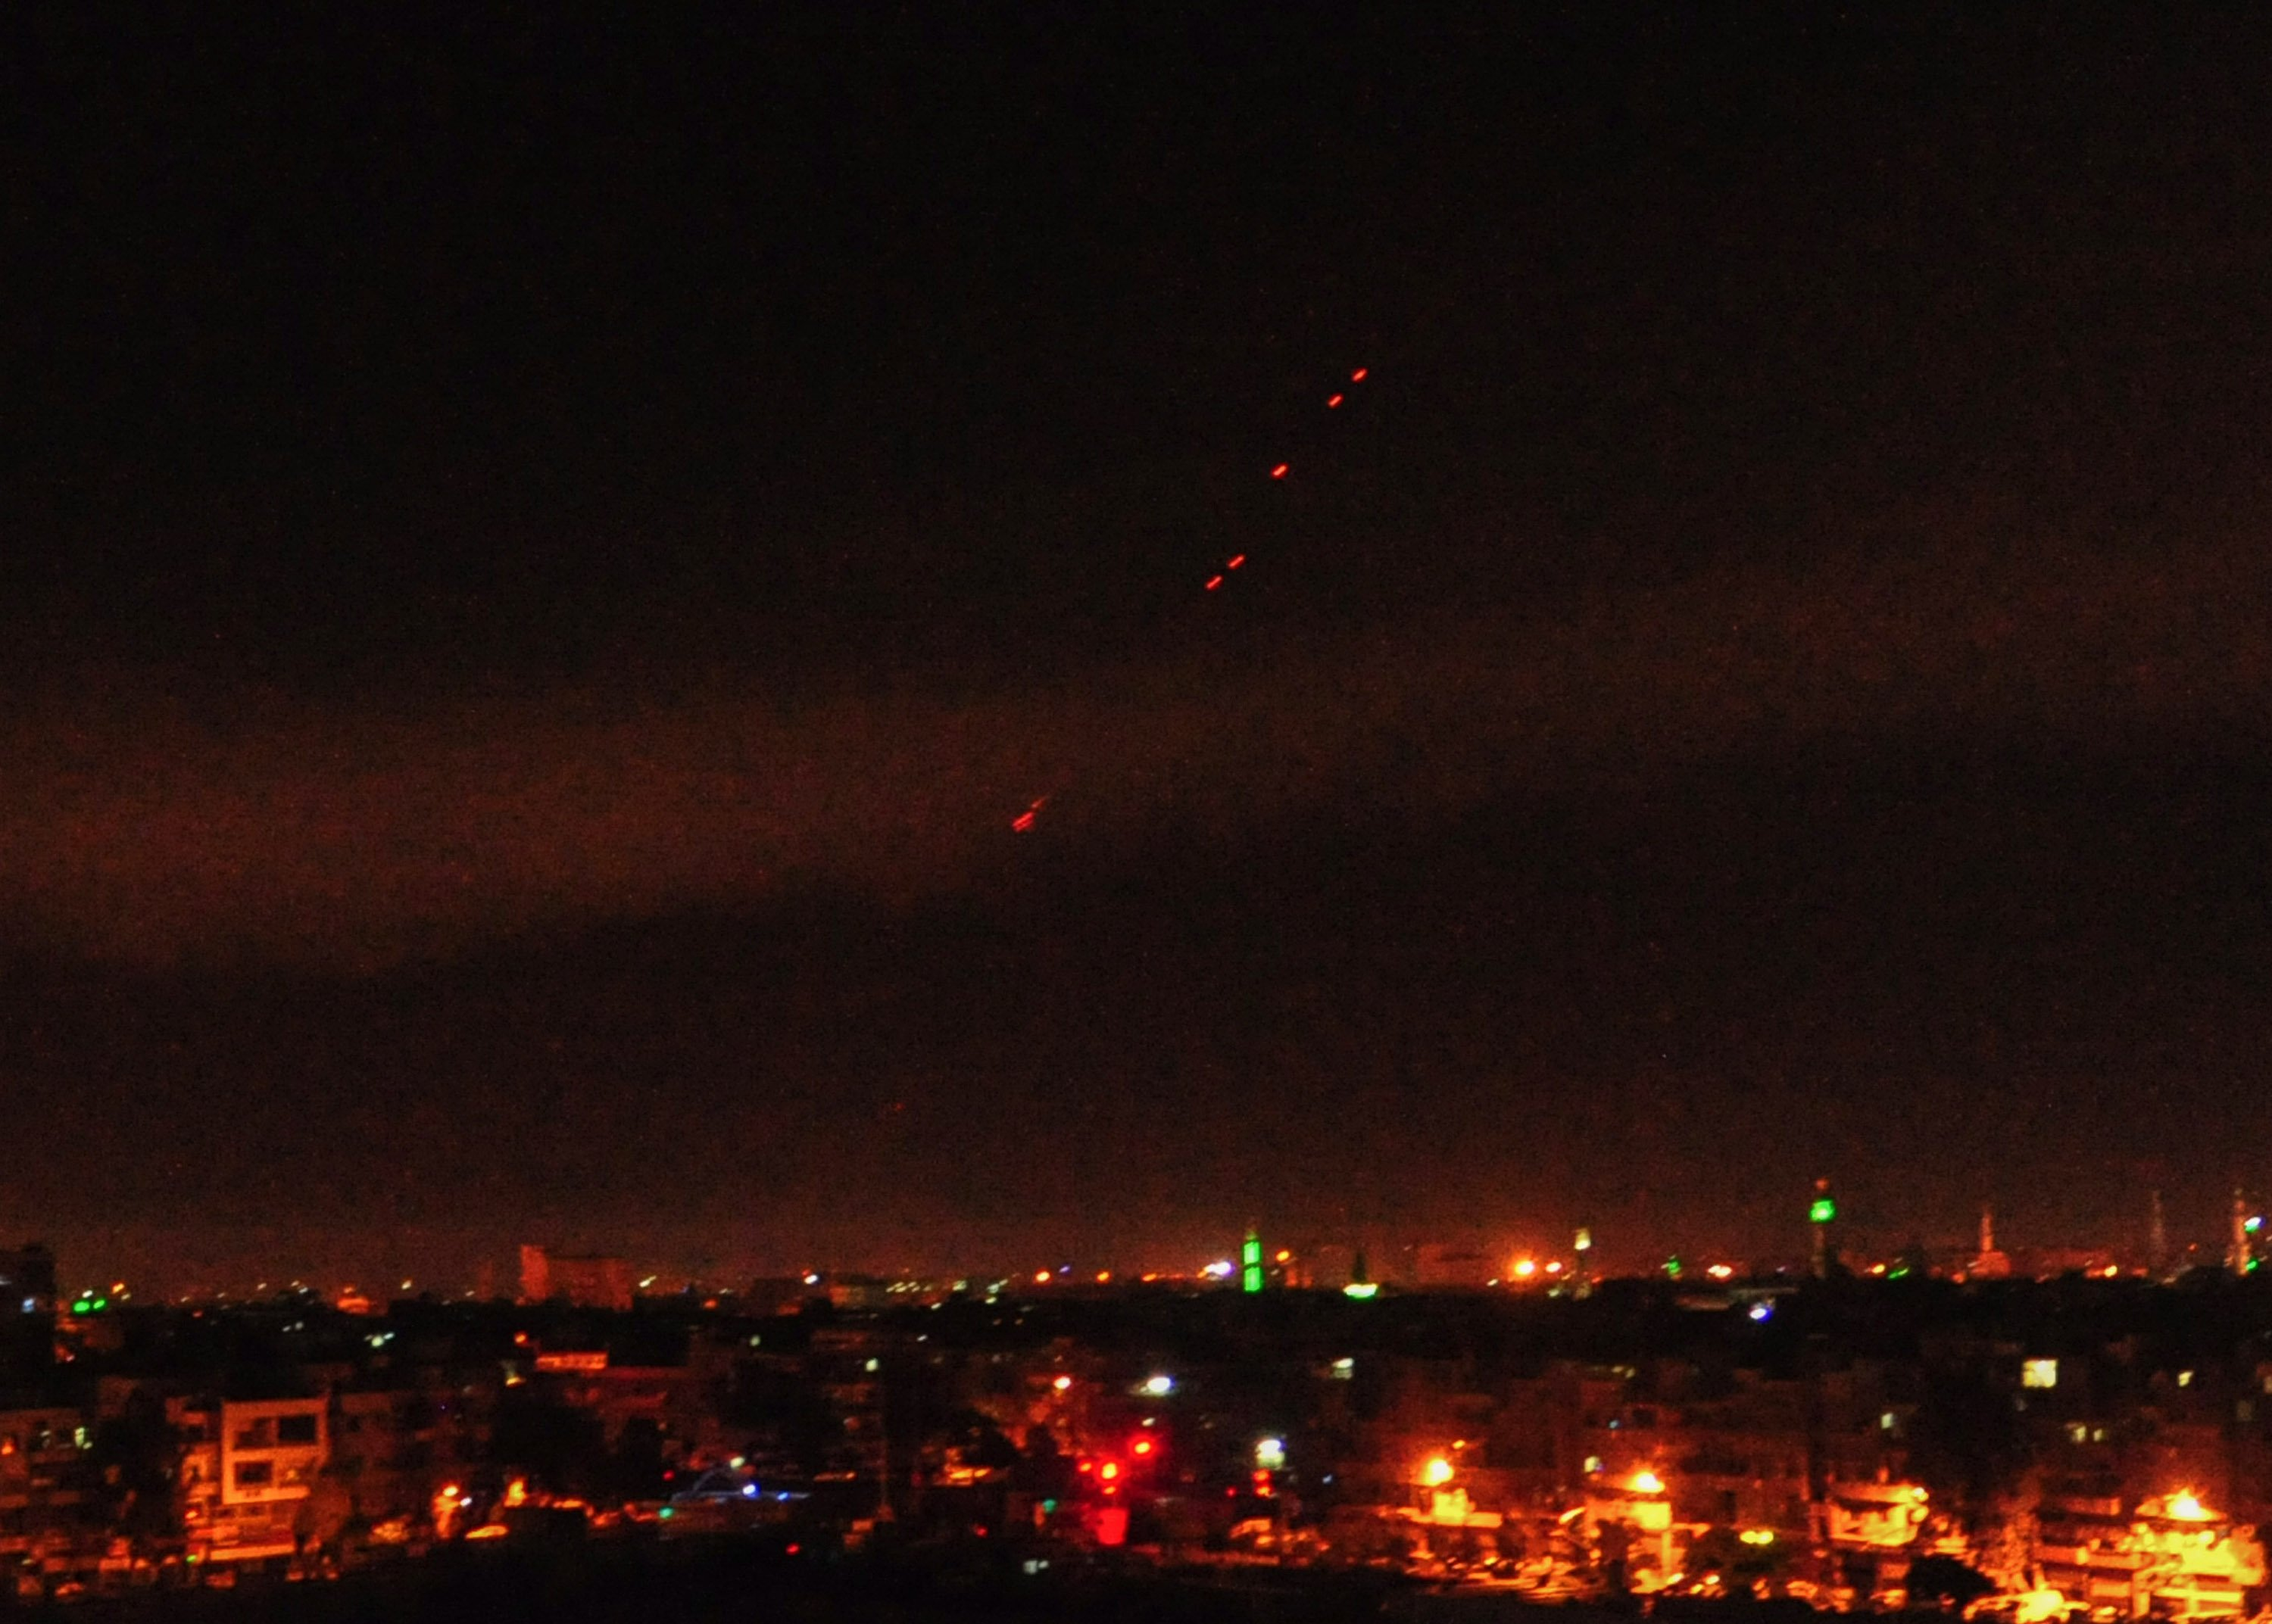 April 14, 2018 - Damascus, Syria - Surface-to-air missiles are seen over Syria's capital Damascus as the Syrian air defenses were responding to U.S. attacks. The U.S. started military actions against Damascus before daybreak Saturday as loud explosions were heard with ''red dots'' seen flying from earth to the sky., Image: 368487683, License: Rights-managed, Restrictions: , Model Release: no, Credit line: Profimedia, Zuma Press - News